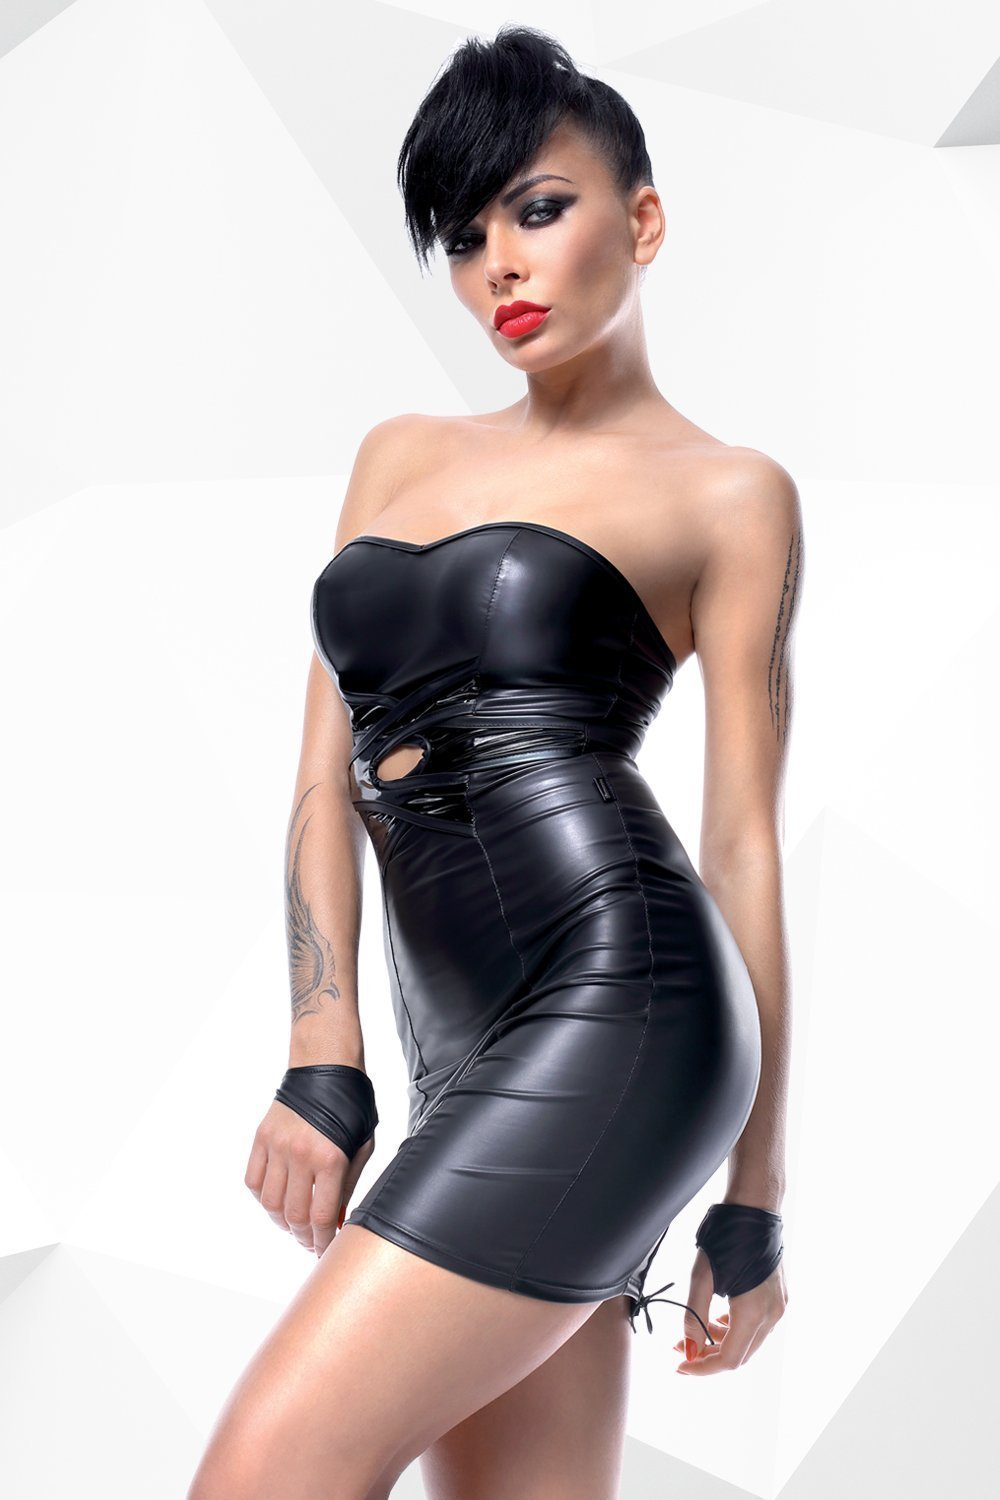 demoniq Dress UK 8 / Black Heidi by Demoniq Hard Candy Collection